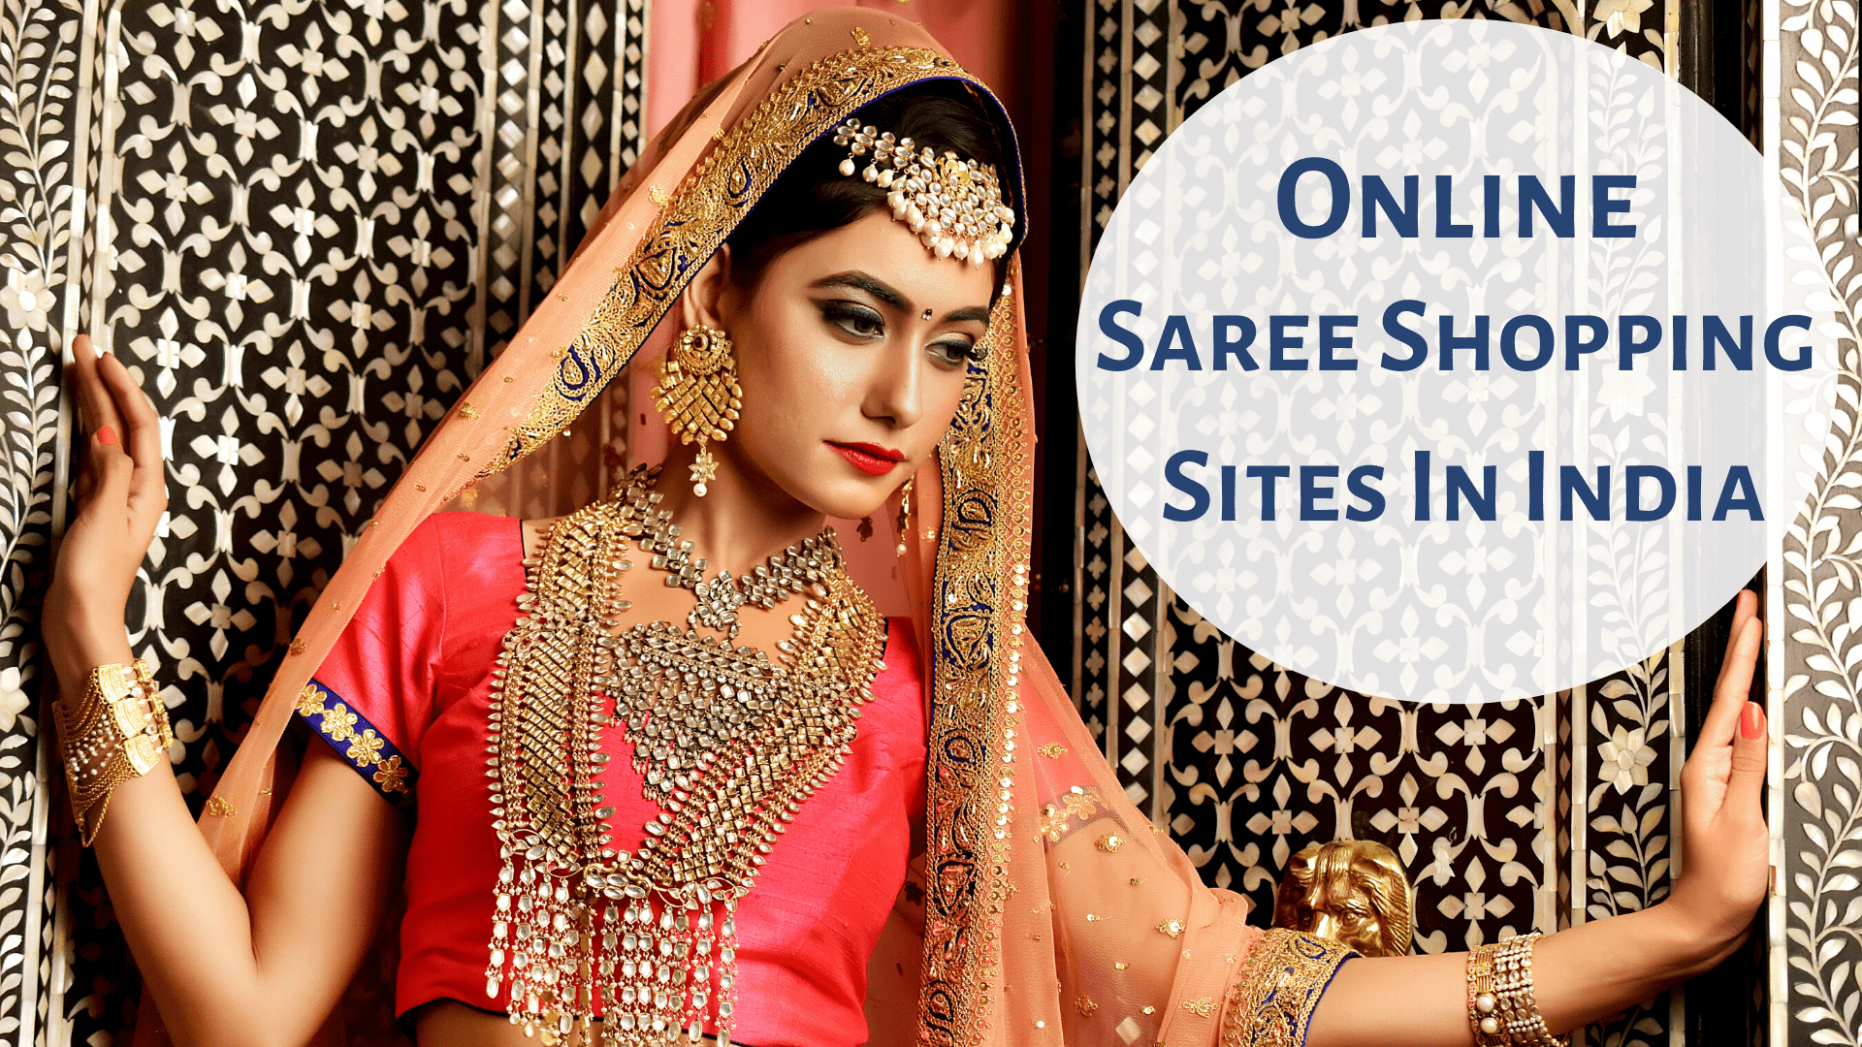 10 Best Online Saree Shopping Sites In India (2020)